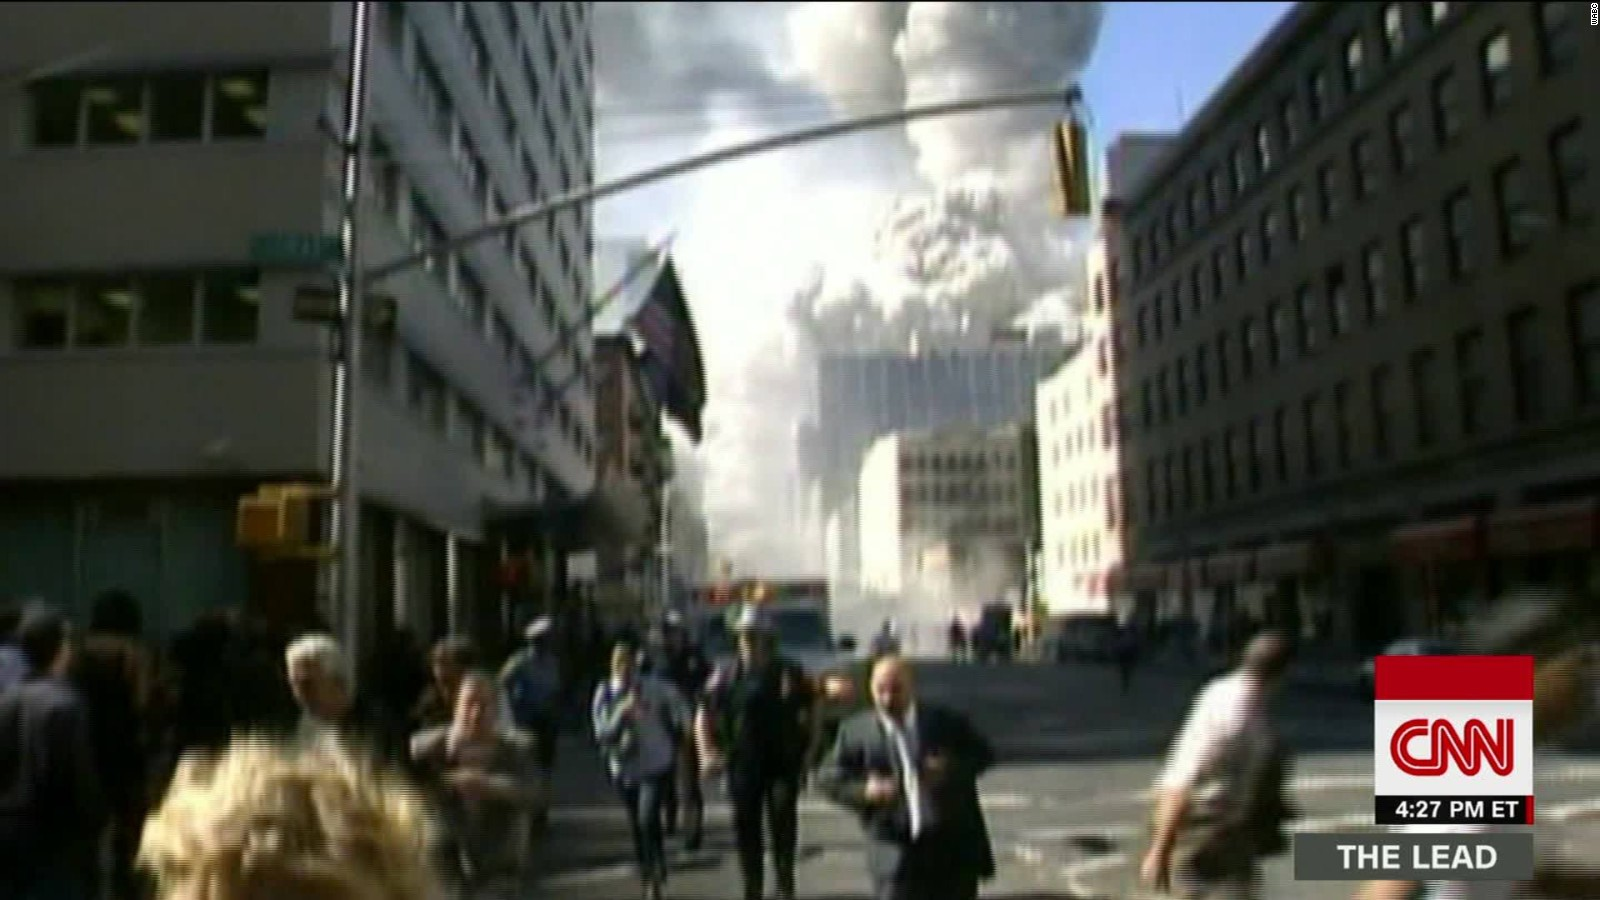 9/11 commission member: Saudi officials helped al Qaeda